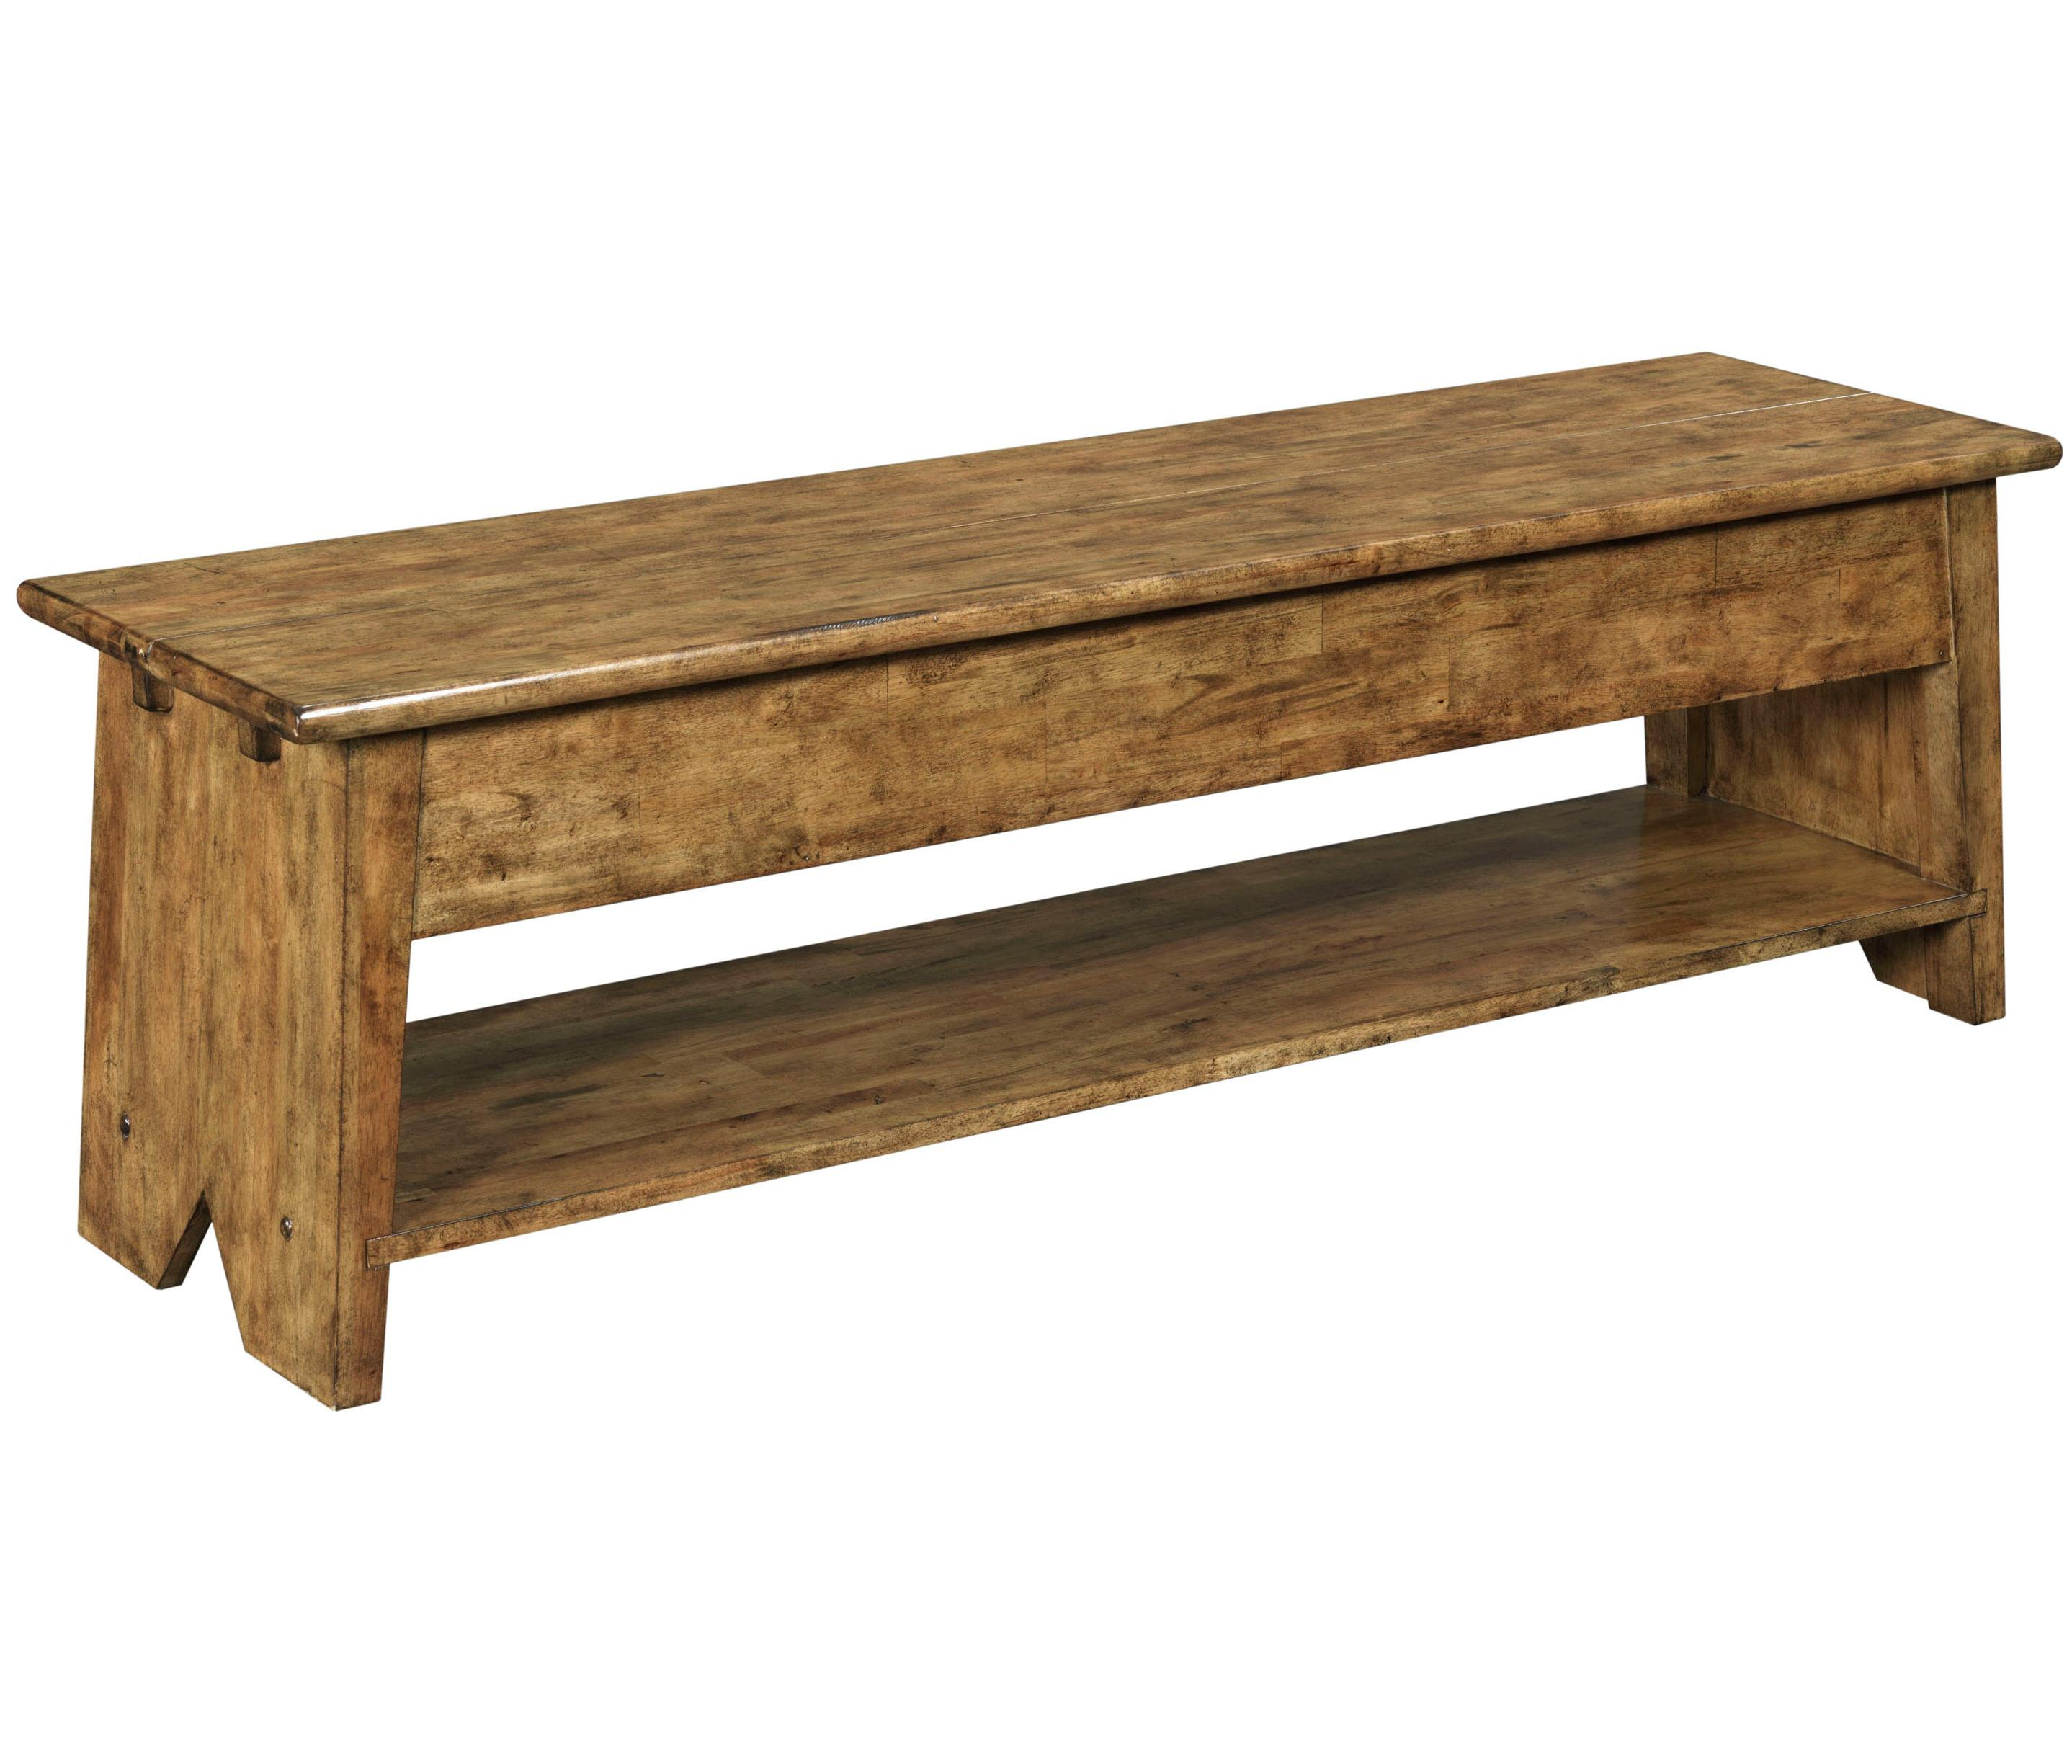 Broyhill Furniture New Vintage Lift Top Storage Bench - Item Number: 4808-596